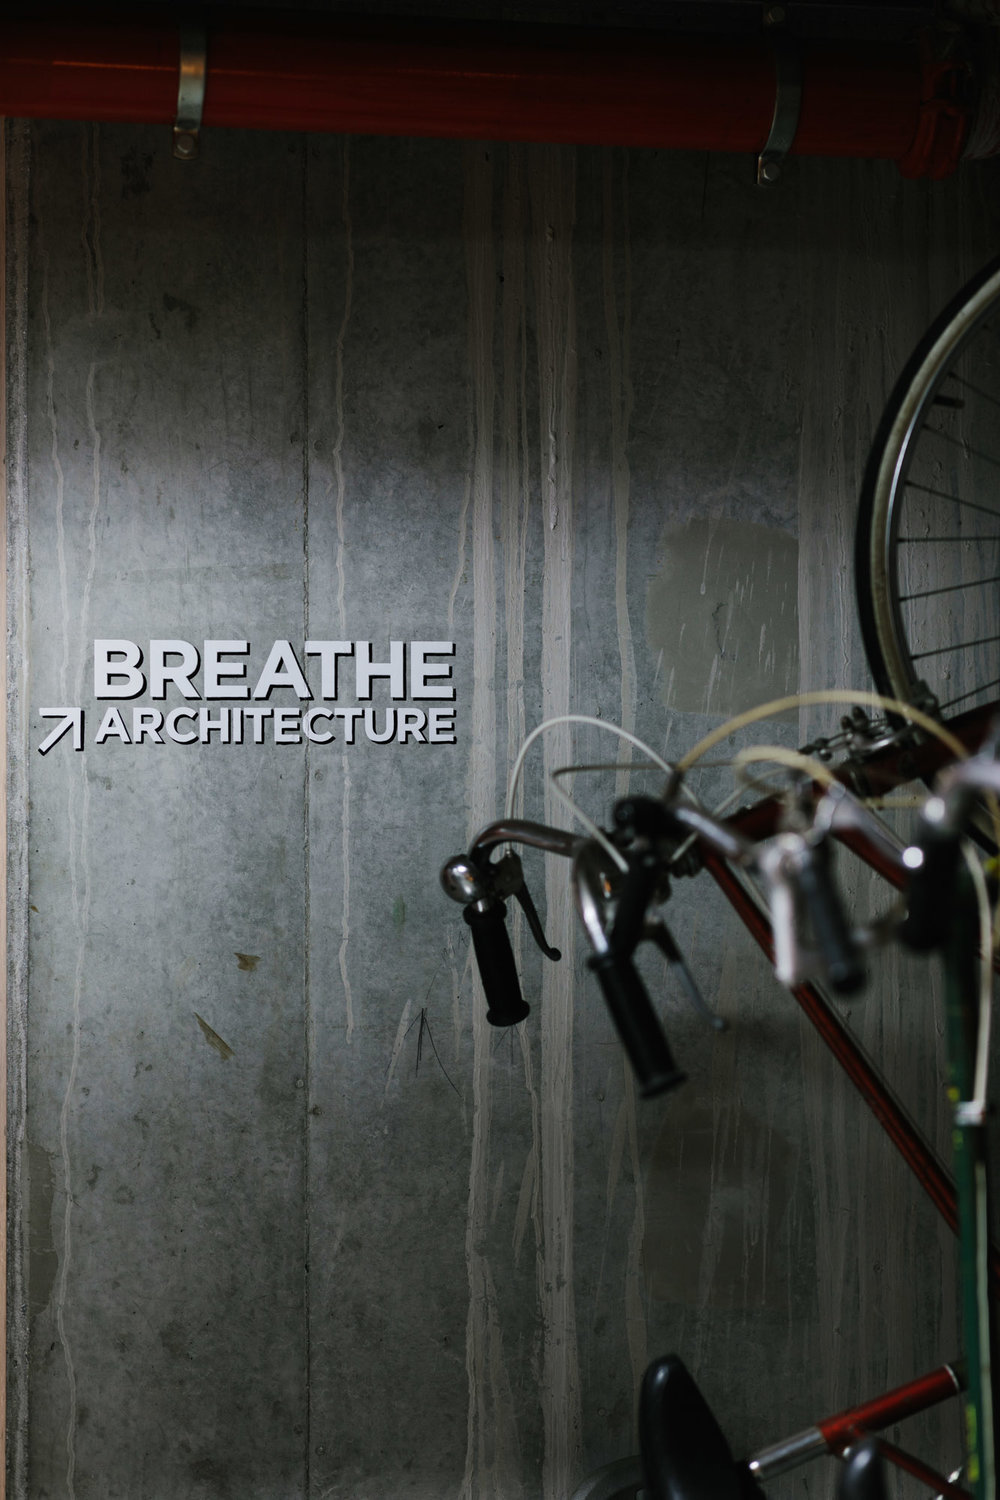 Marnie Hawson, Melbourne interior photographer for Breathe Architects and Habitus magazine